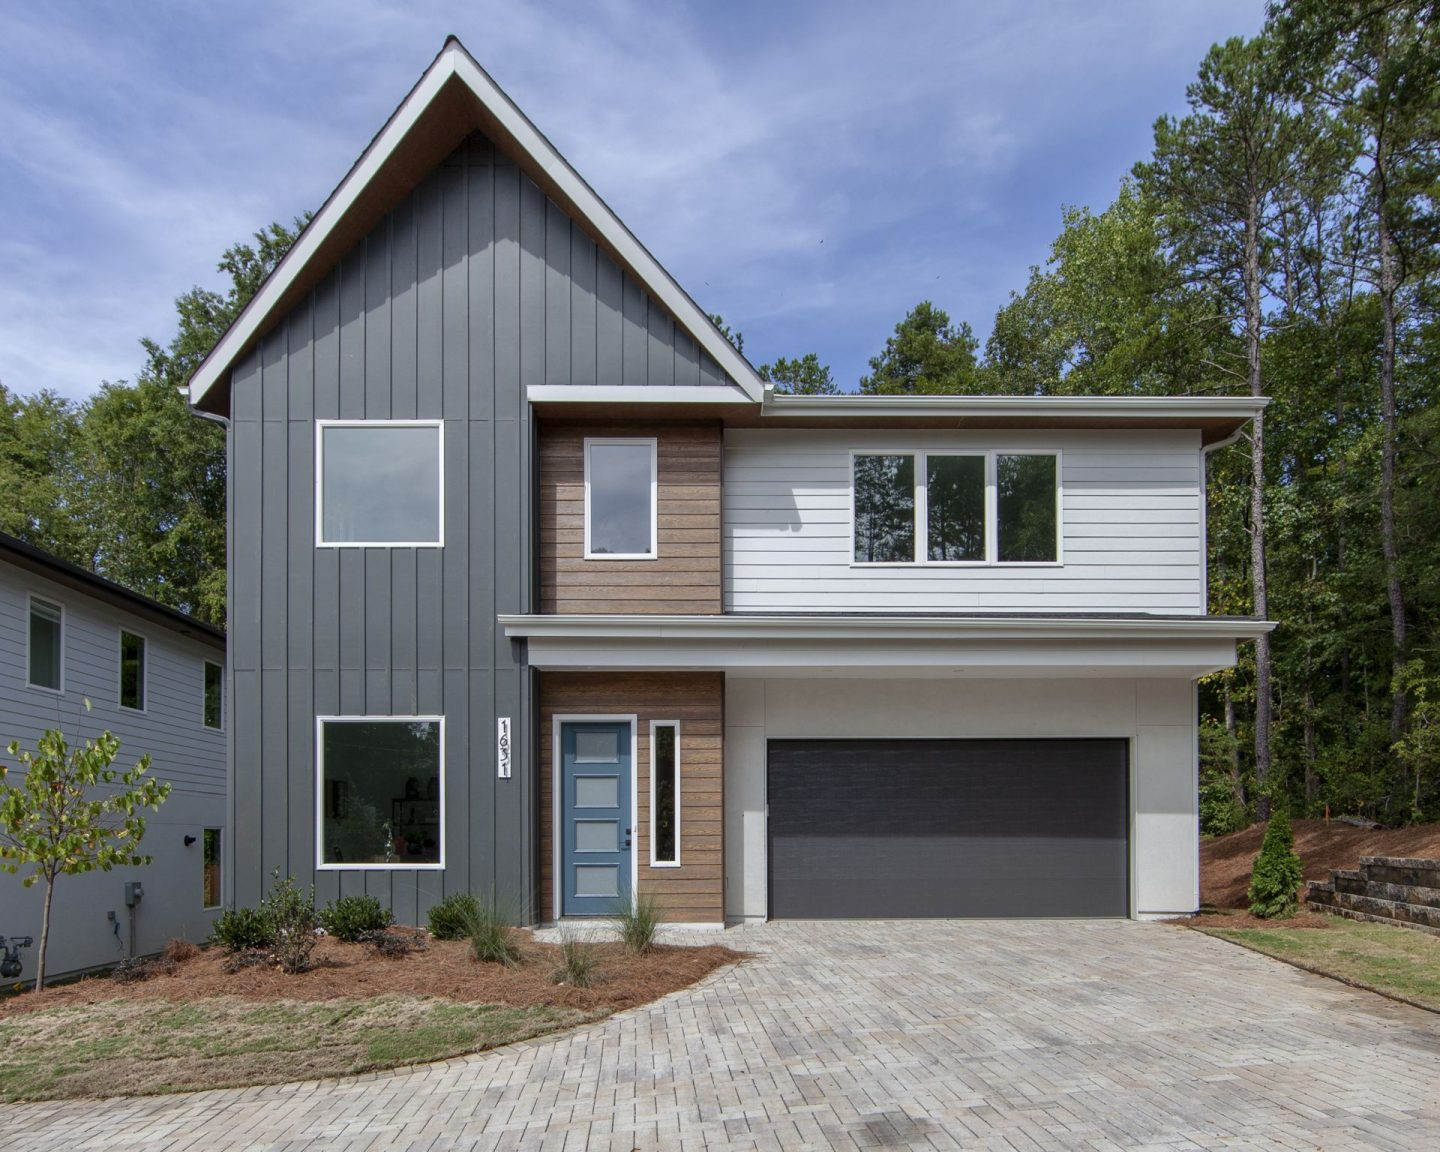 Kale Mills, MoRa, Charlotte, NC - Chelsea Building Group - Schwaiger Realty Group